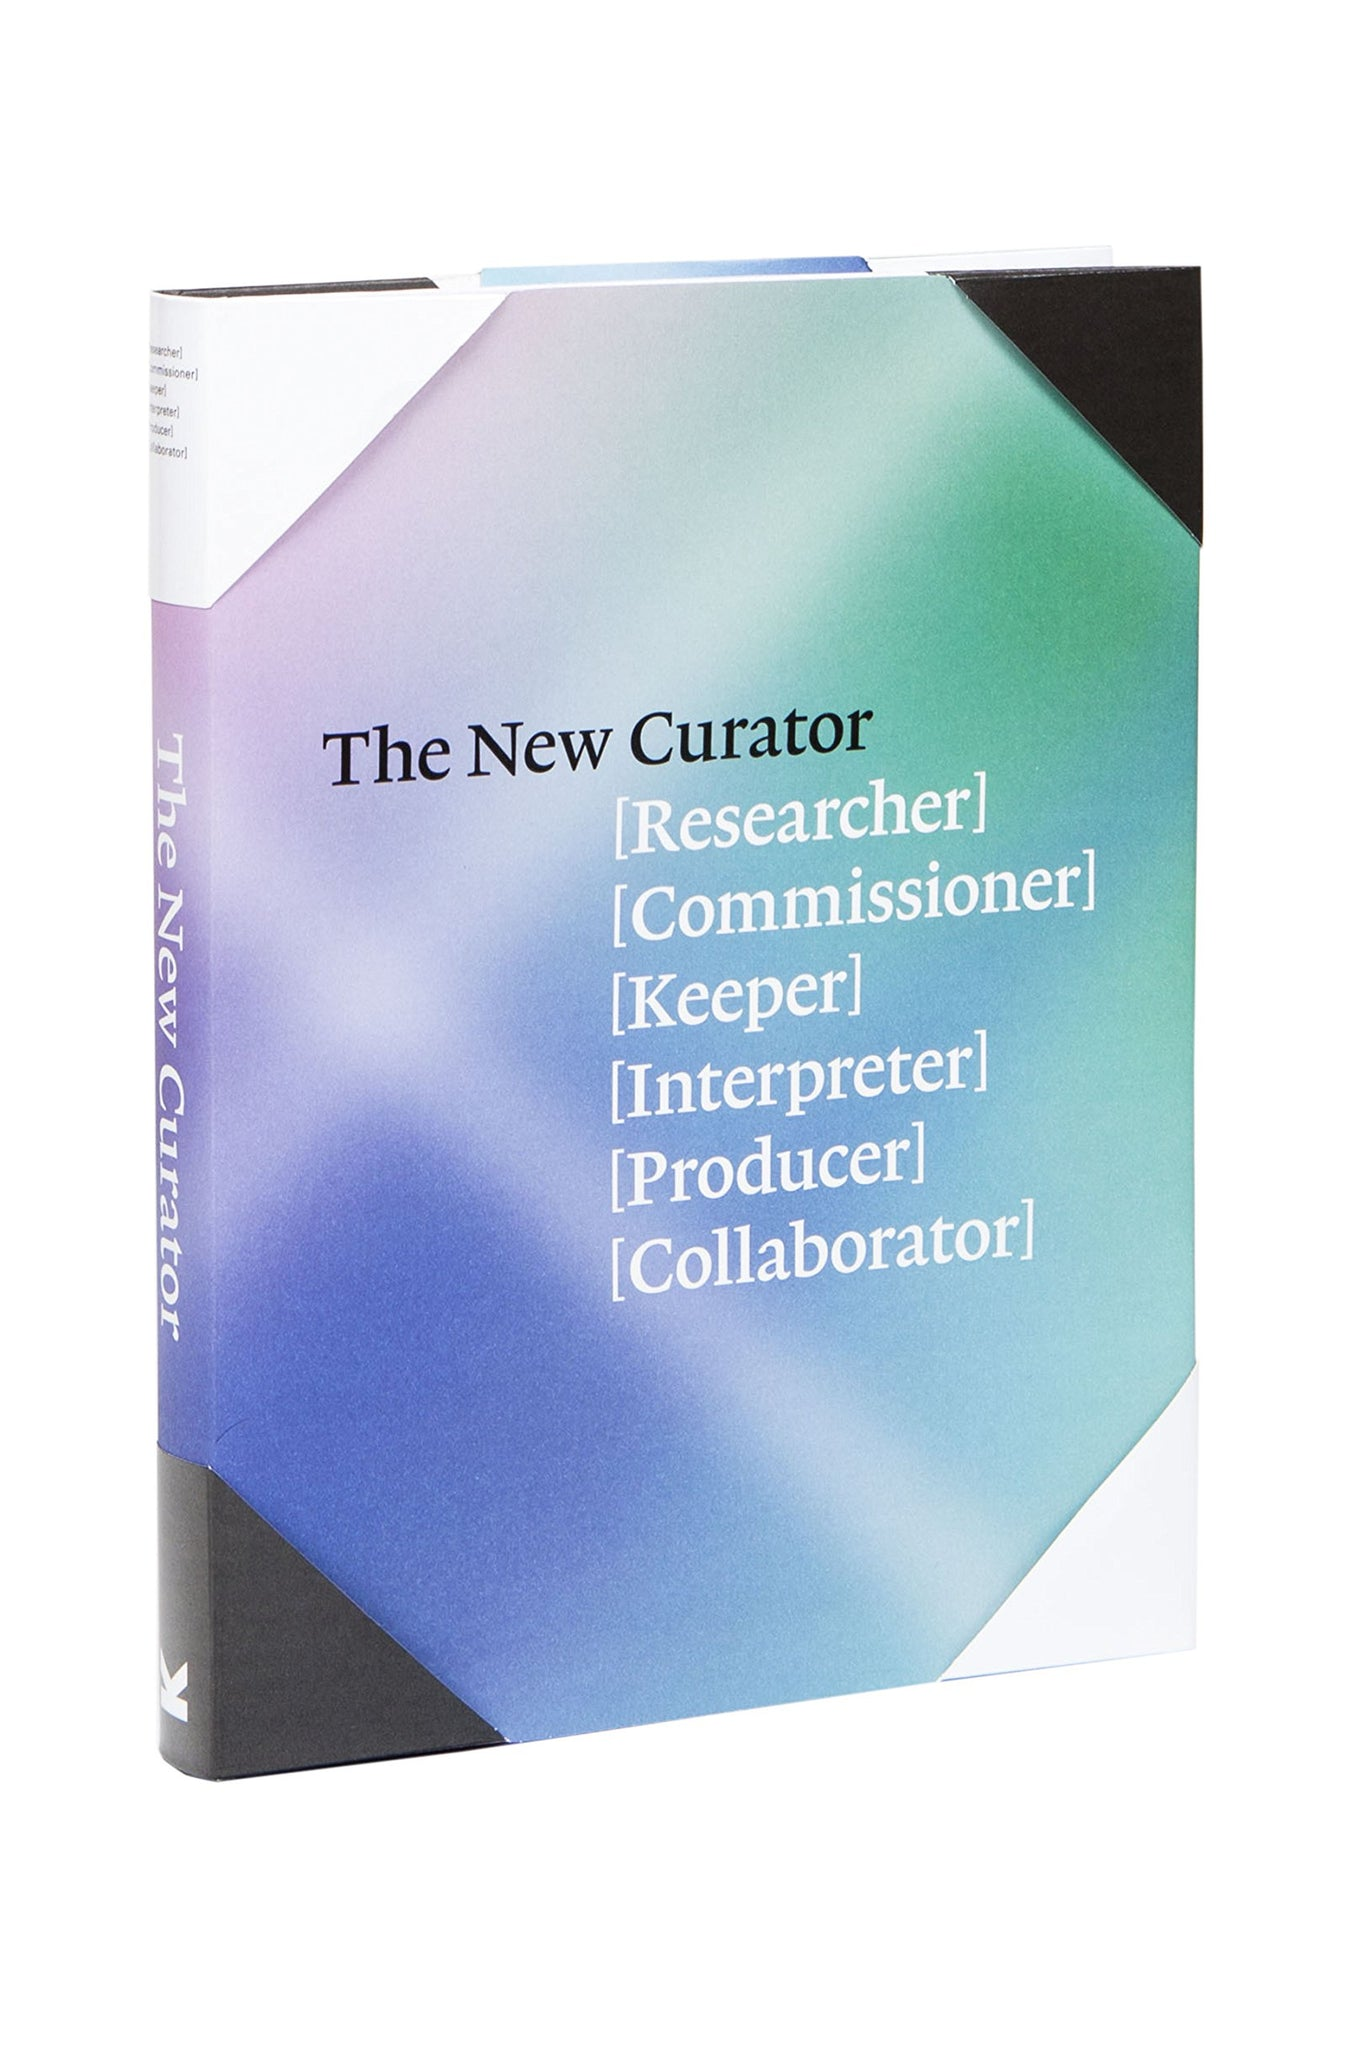 The New Curator by Ben Borthwick & Natasha Hoare.